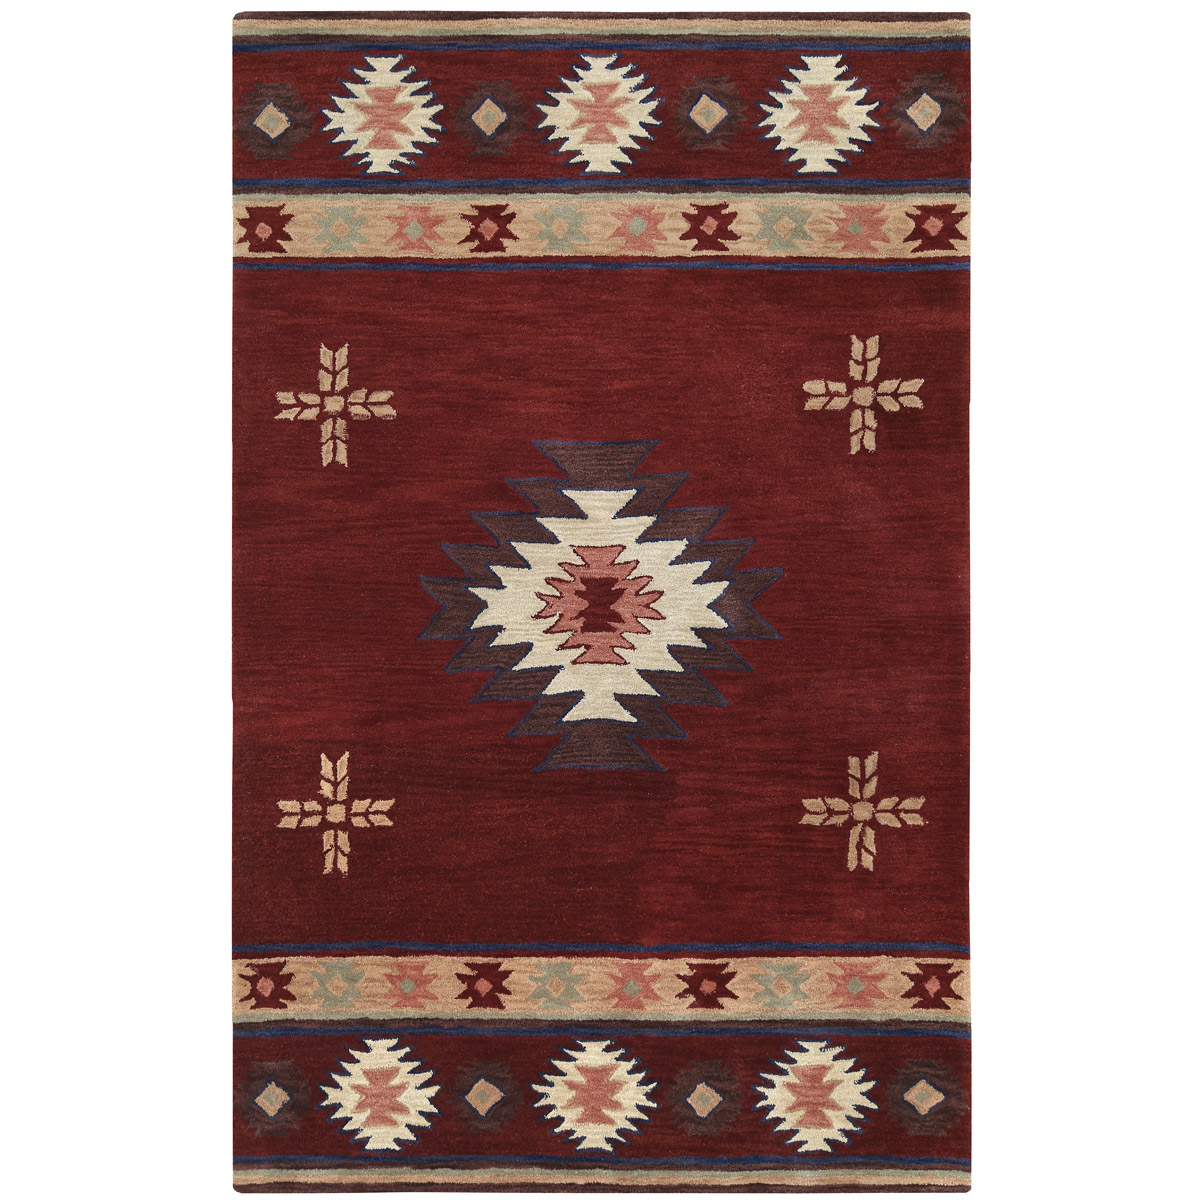 Southwest Burgundy Rug - 8 x 10